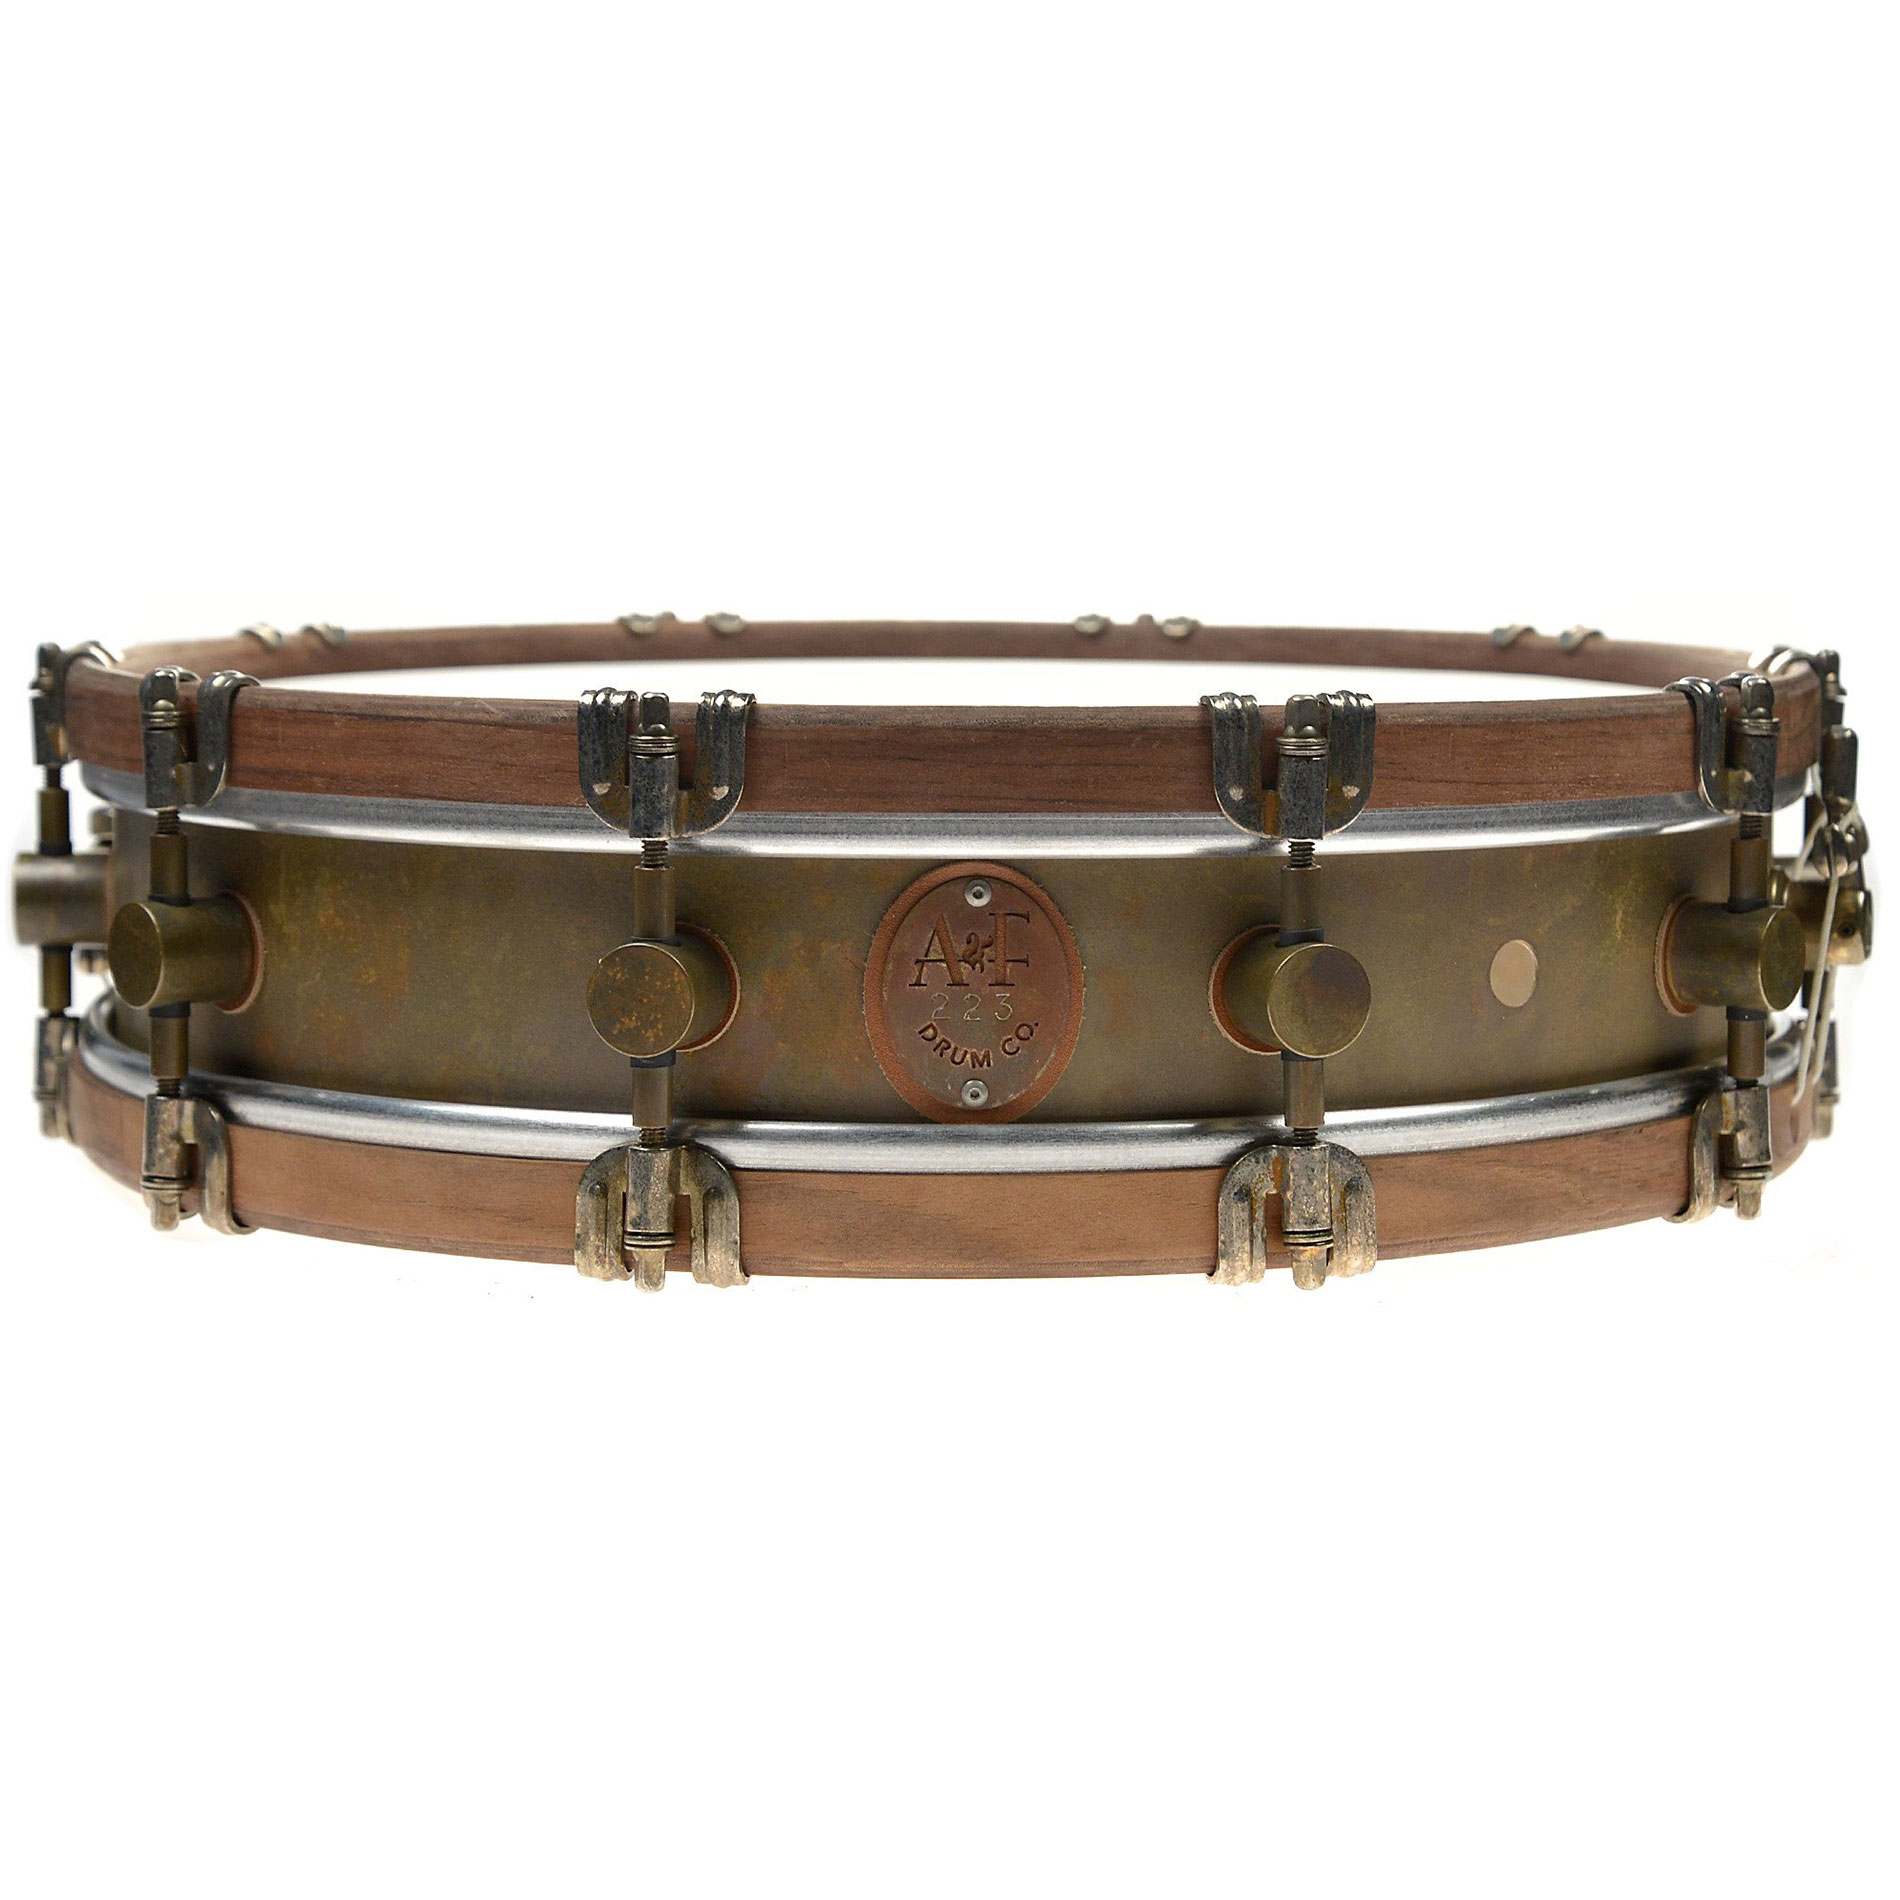 "A&F Drum Co. 3.5"" x 15"" Limited Edition Raw Brass Snare Drum with European Walnut Hoops"